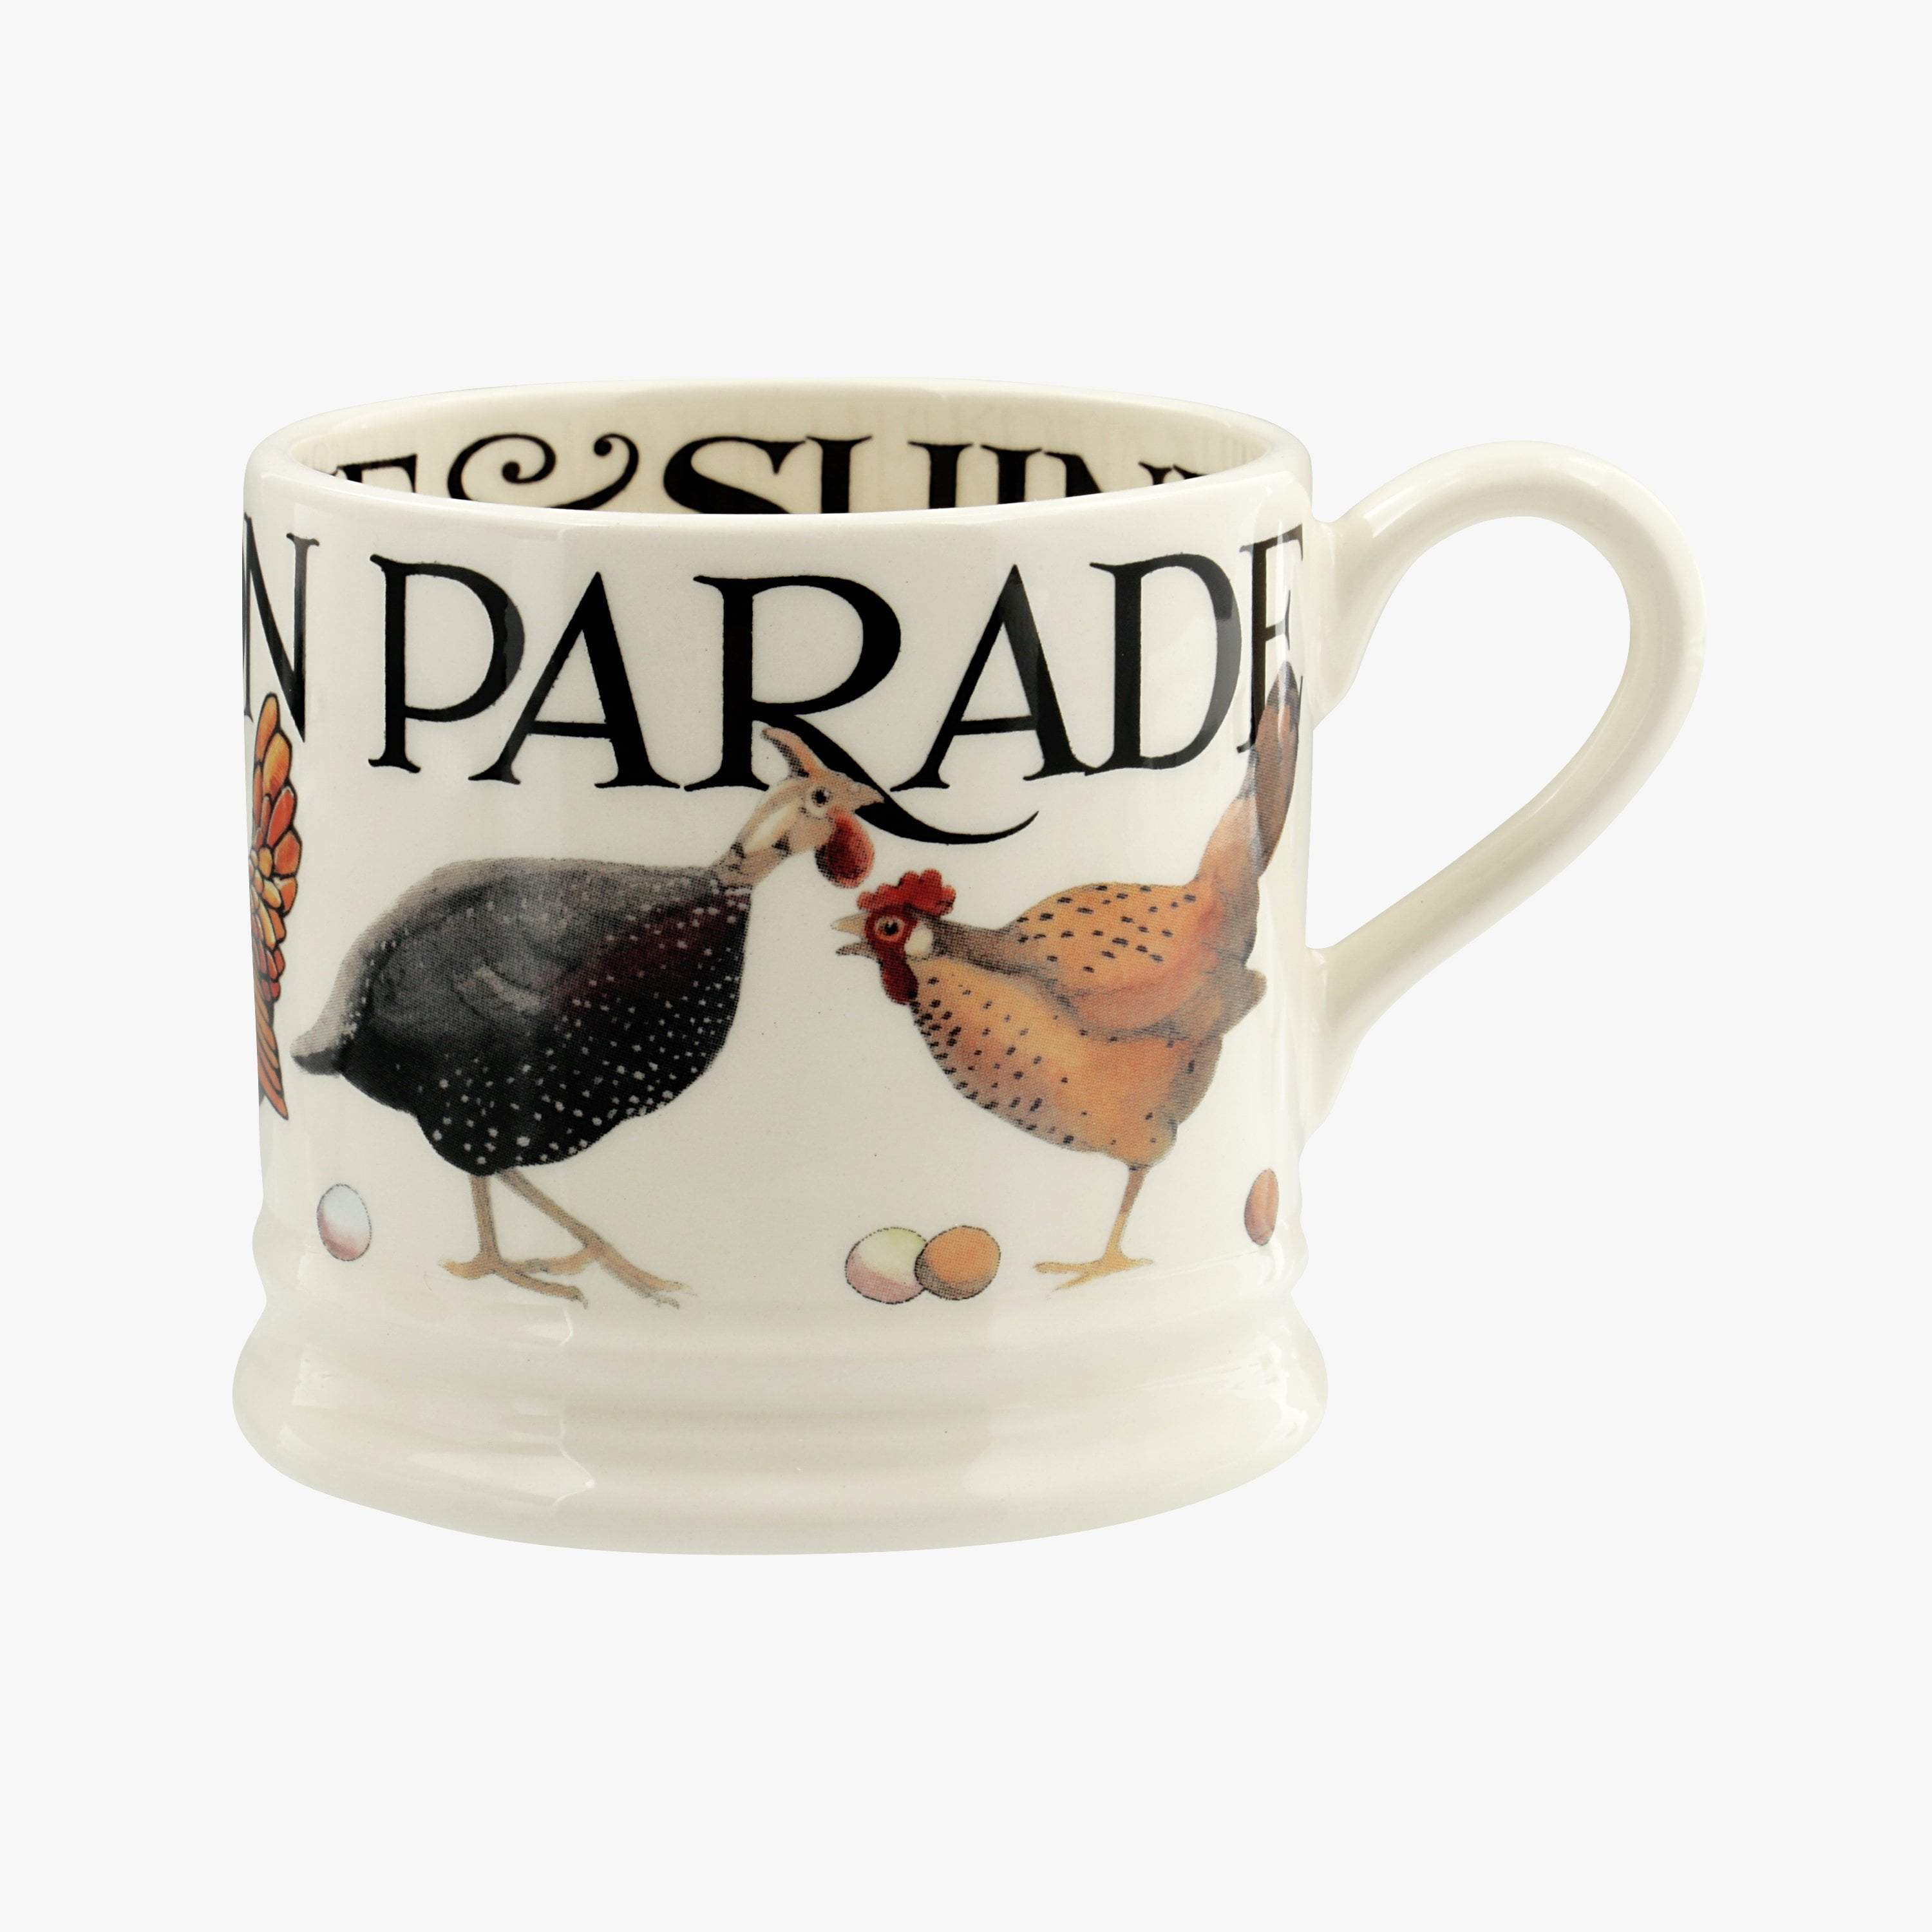 Rise and Shine Parade Small Mug